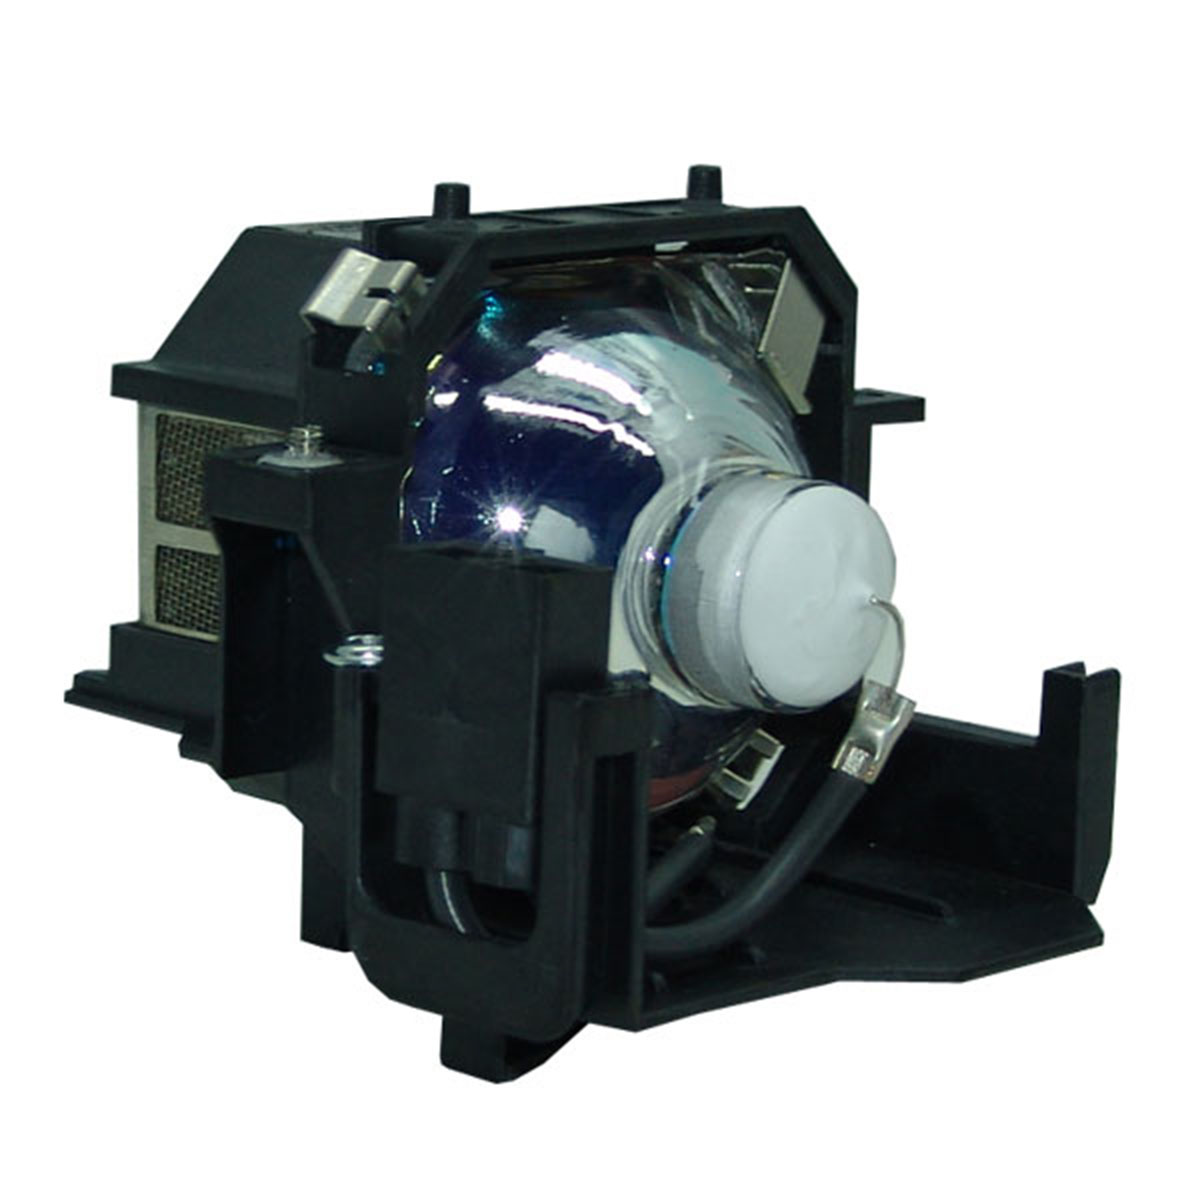 Lutema Projector Lamp Replacement for Epson H285A   eBay